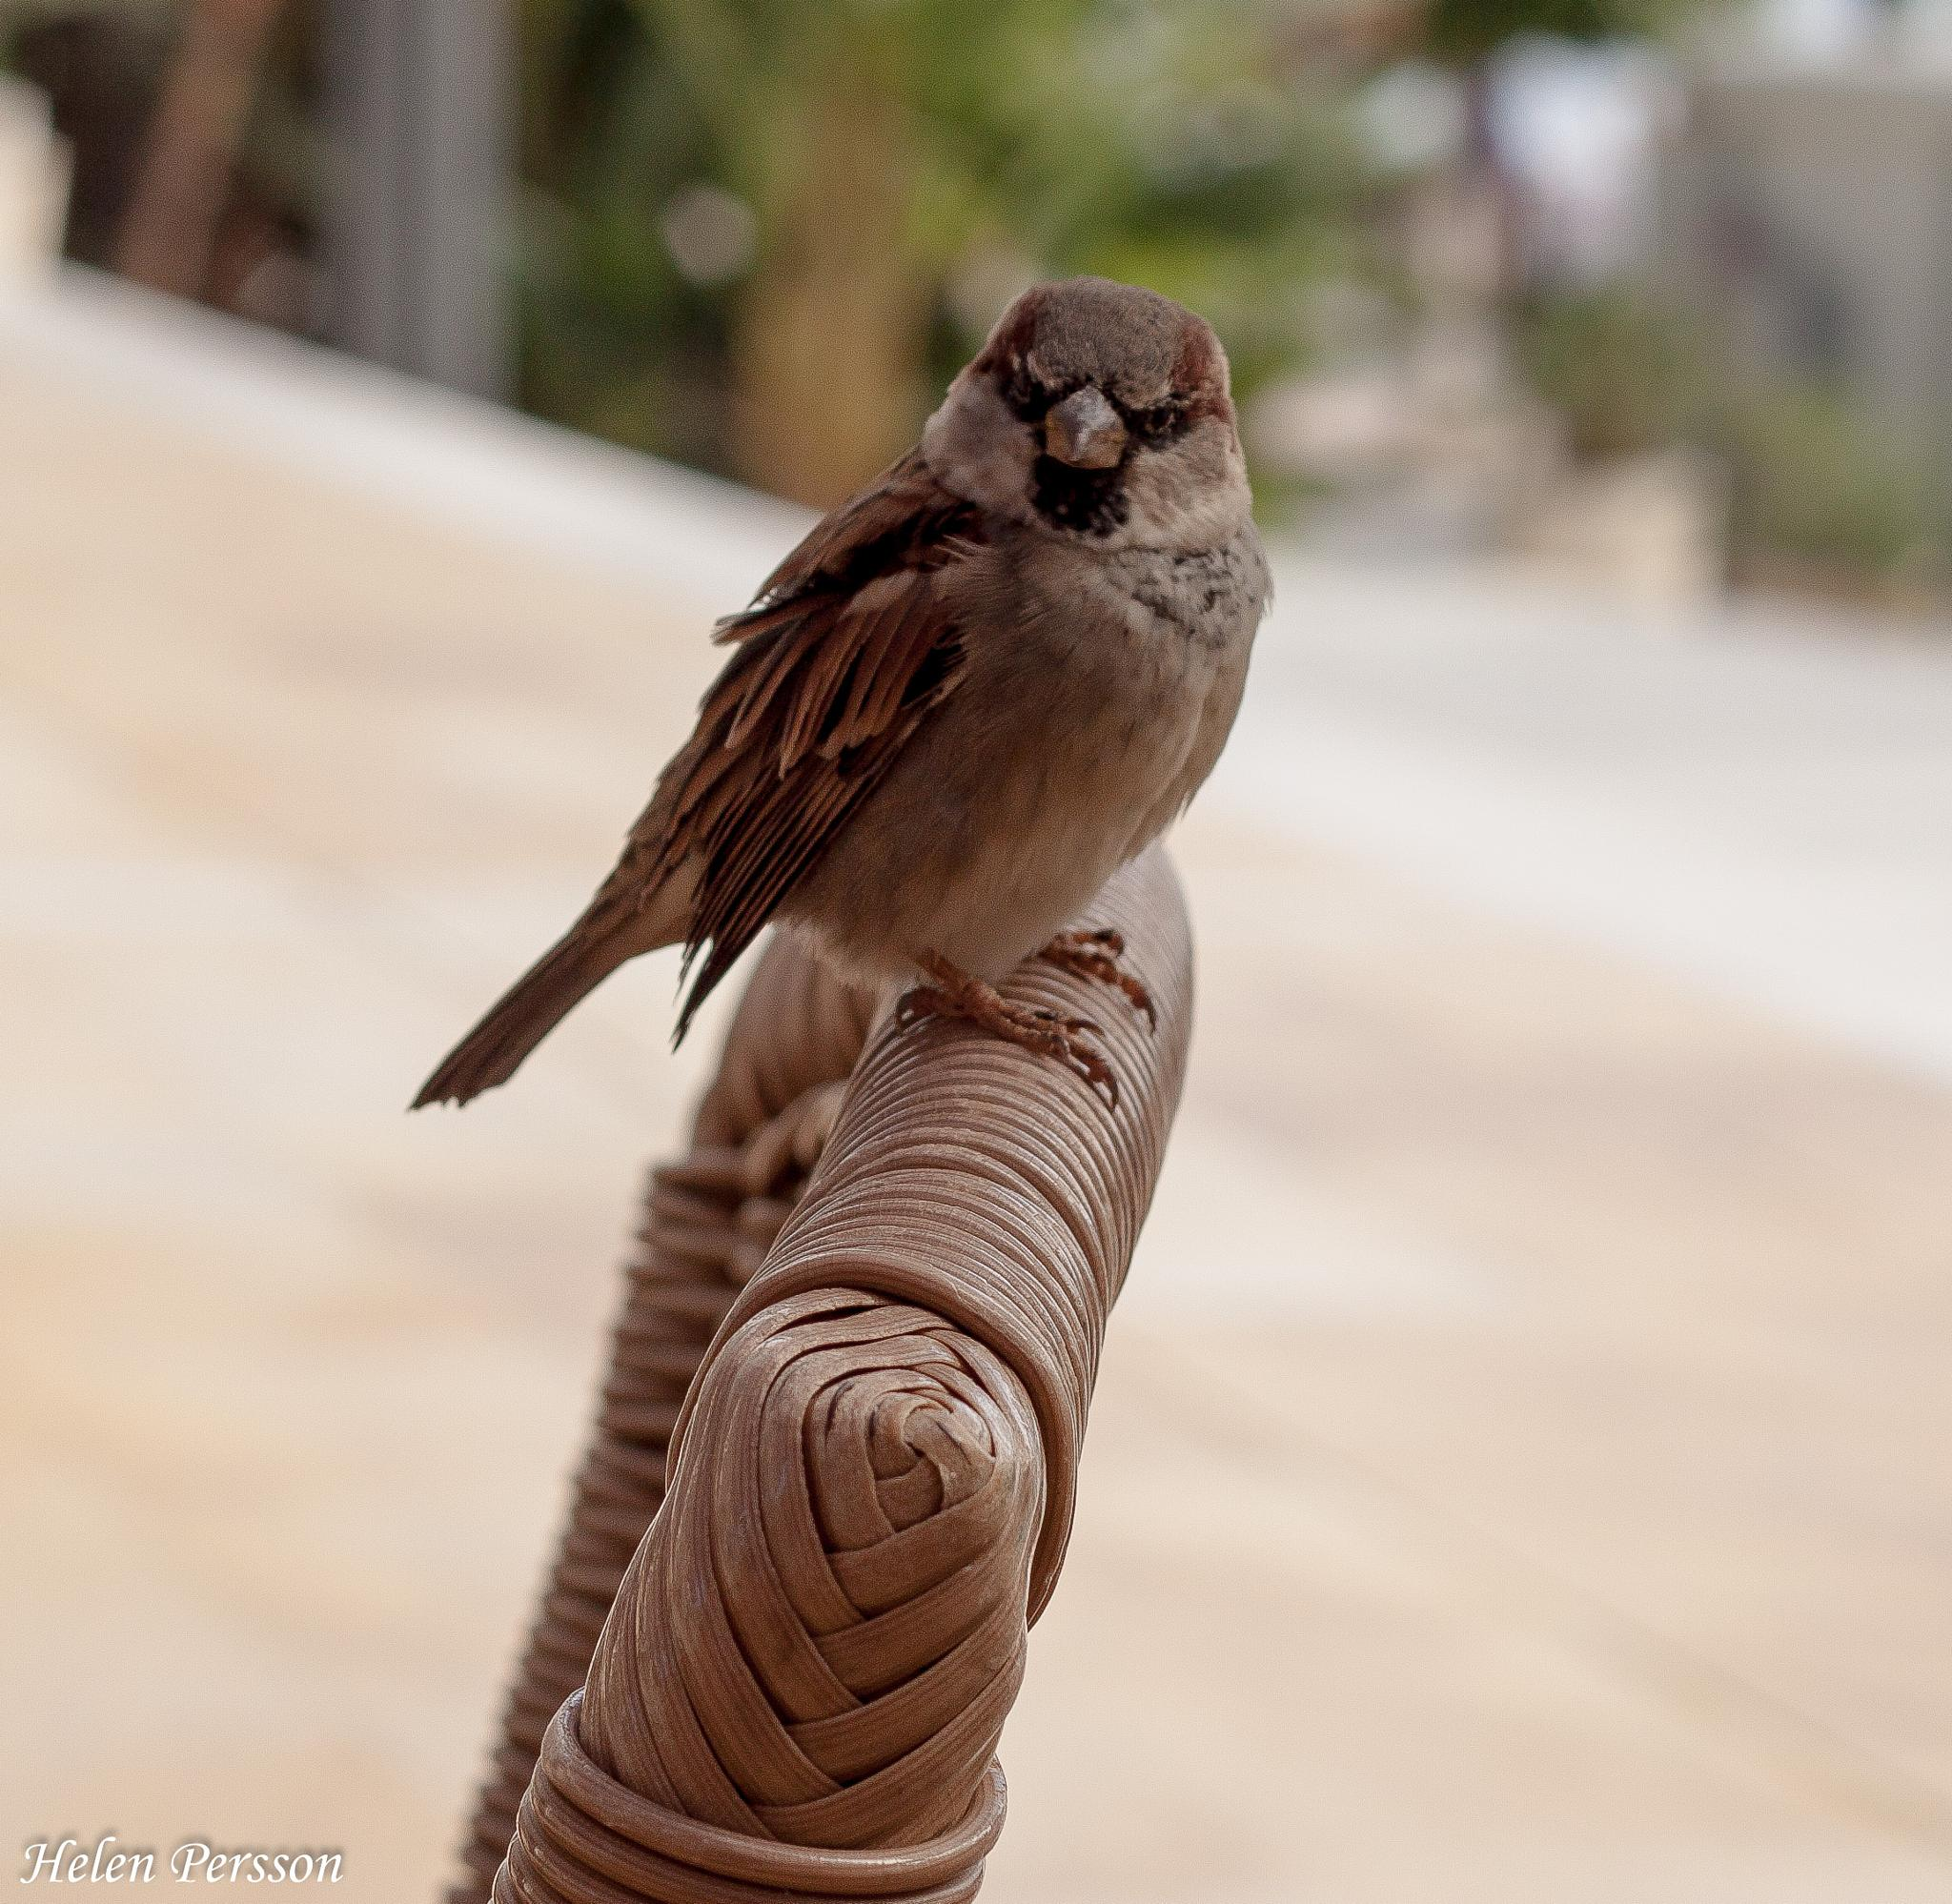 Sparrow watching me by helen.persson.564